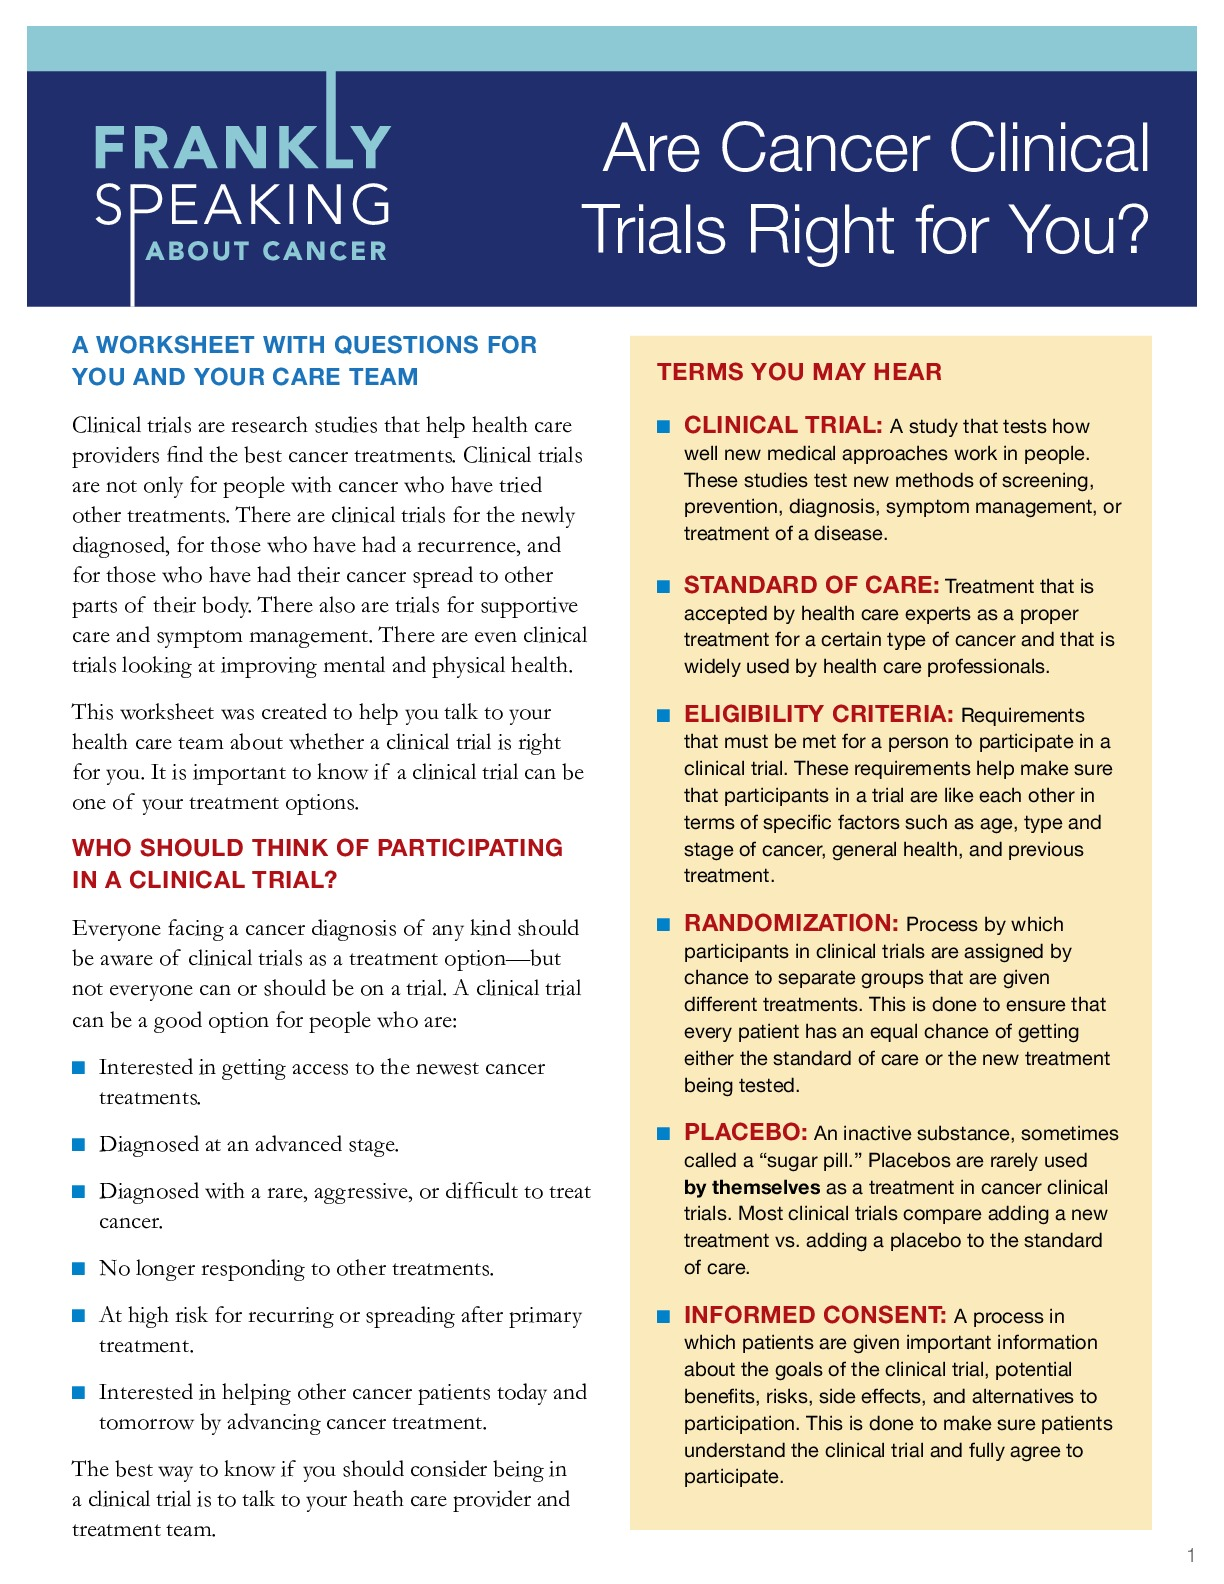 Are Clinical Trials Right for You? A Worksheet With Questions for You and Your Care Team